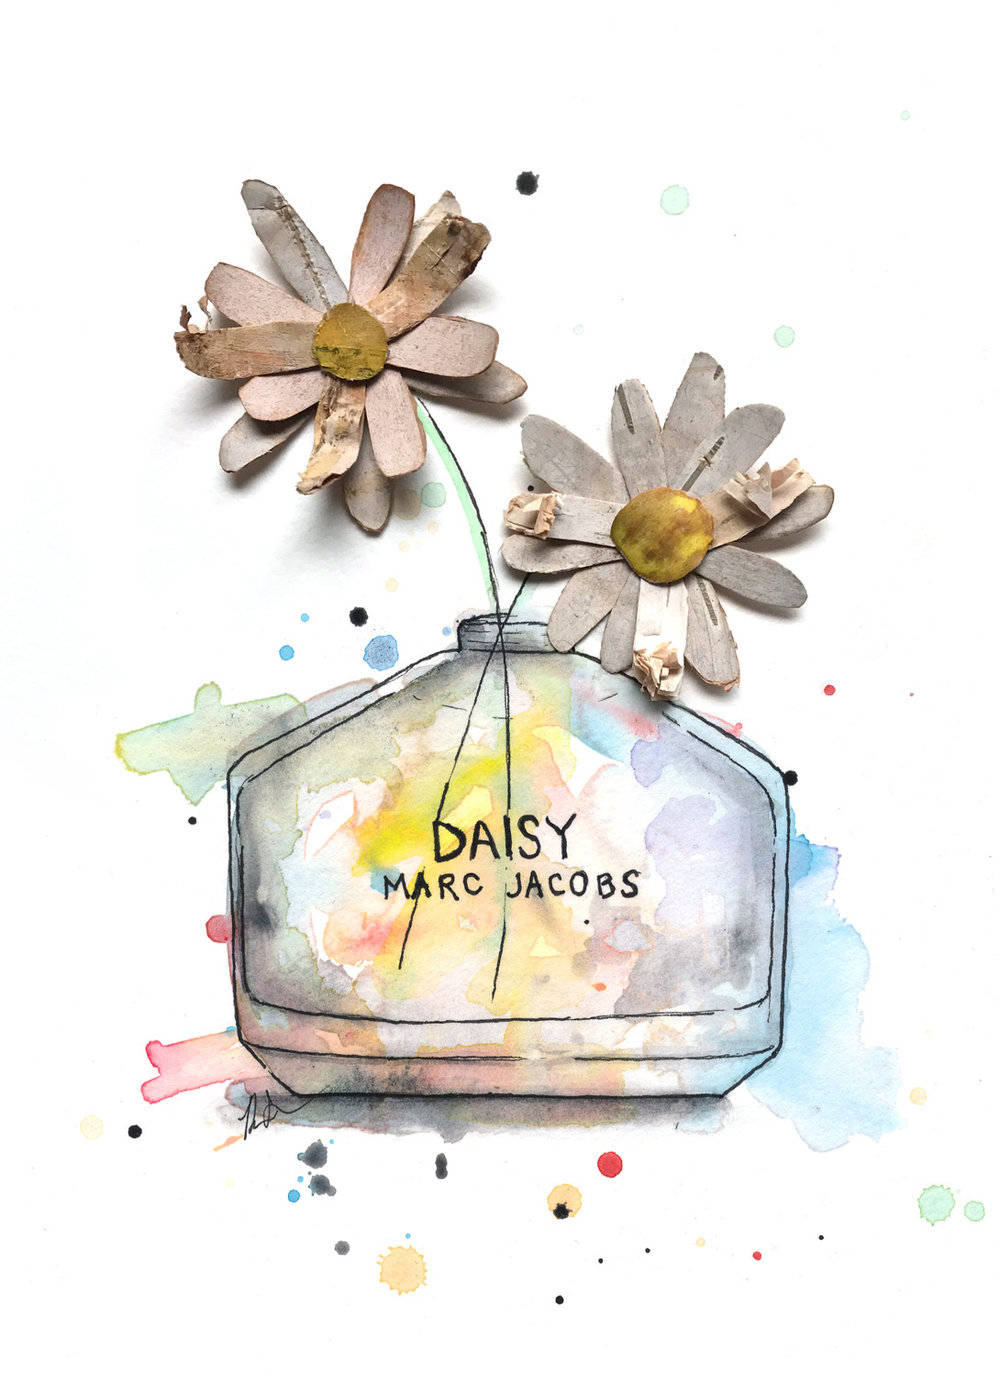 Benjamin-Edward-Marc-Jacobs-Daisy-Perfume-watercolour-illustration.jpg